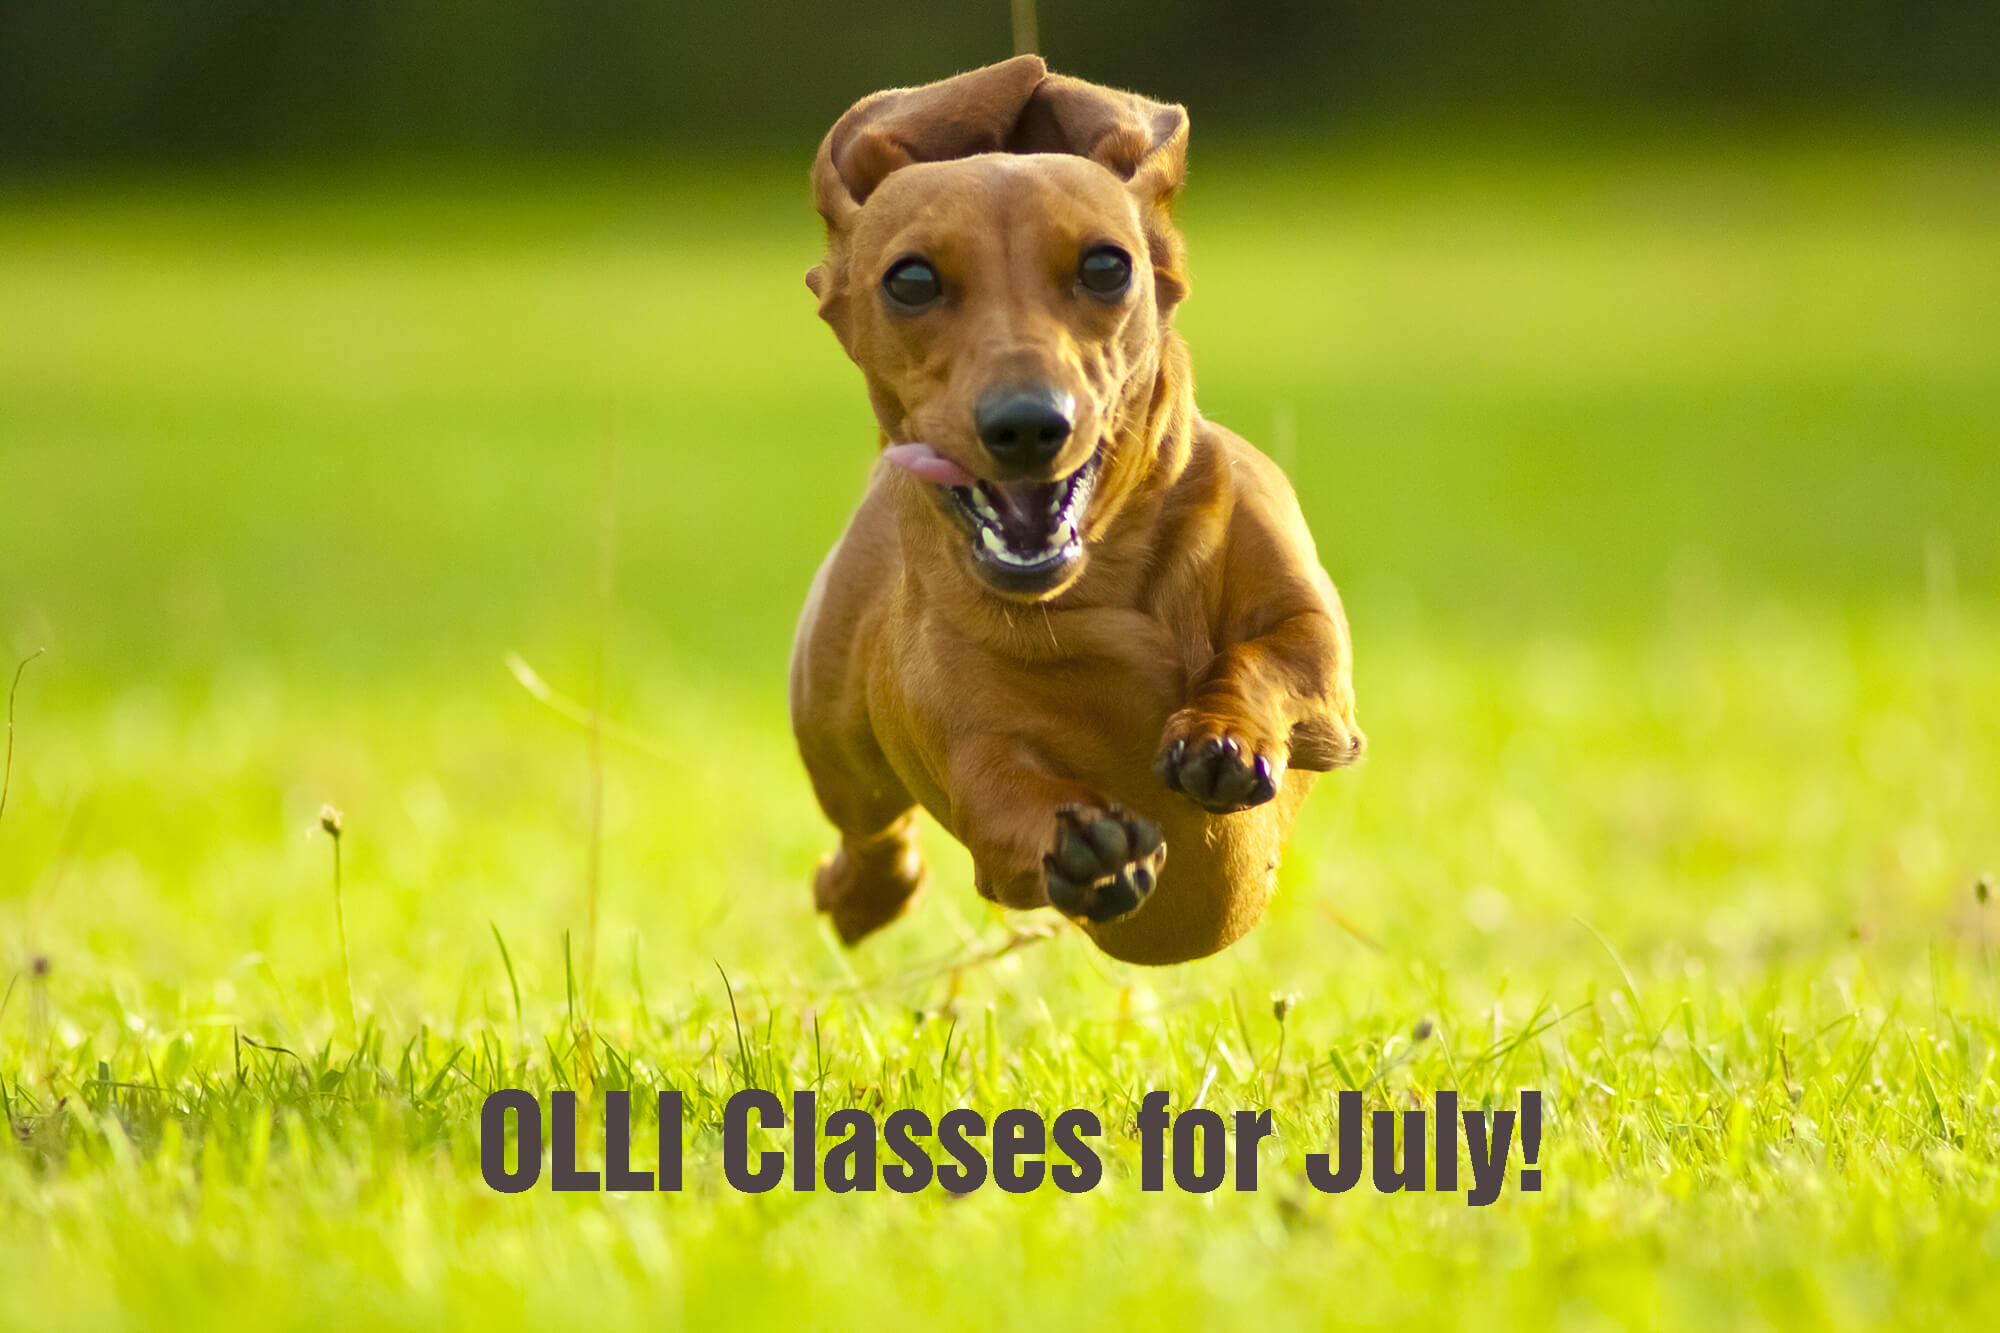 """Dachshund running in the grass with the words """"OLLI Classes for July!"""""""